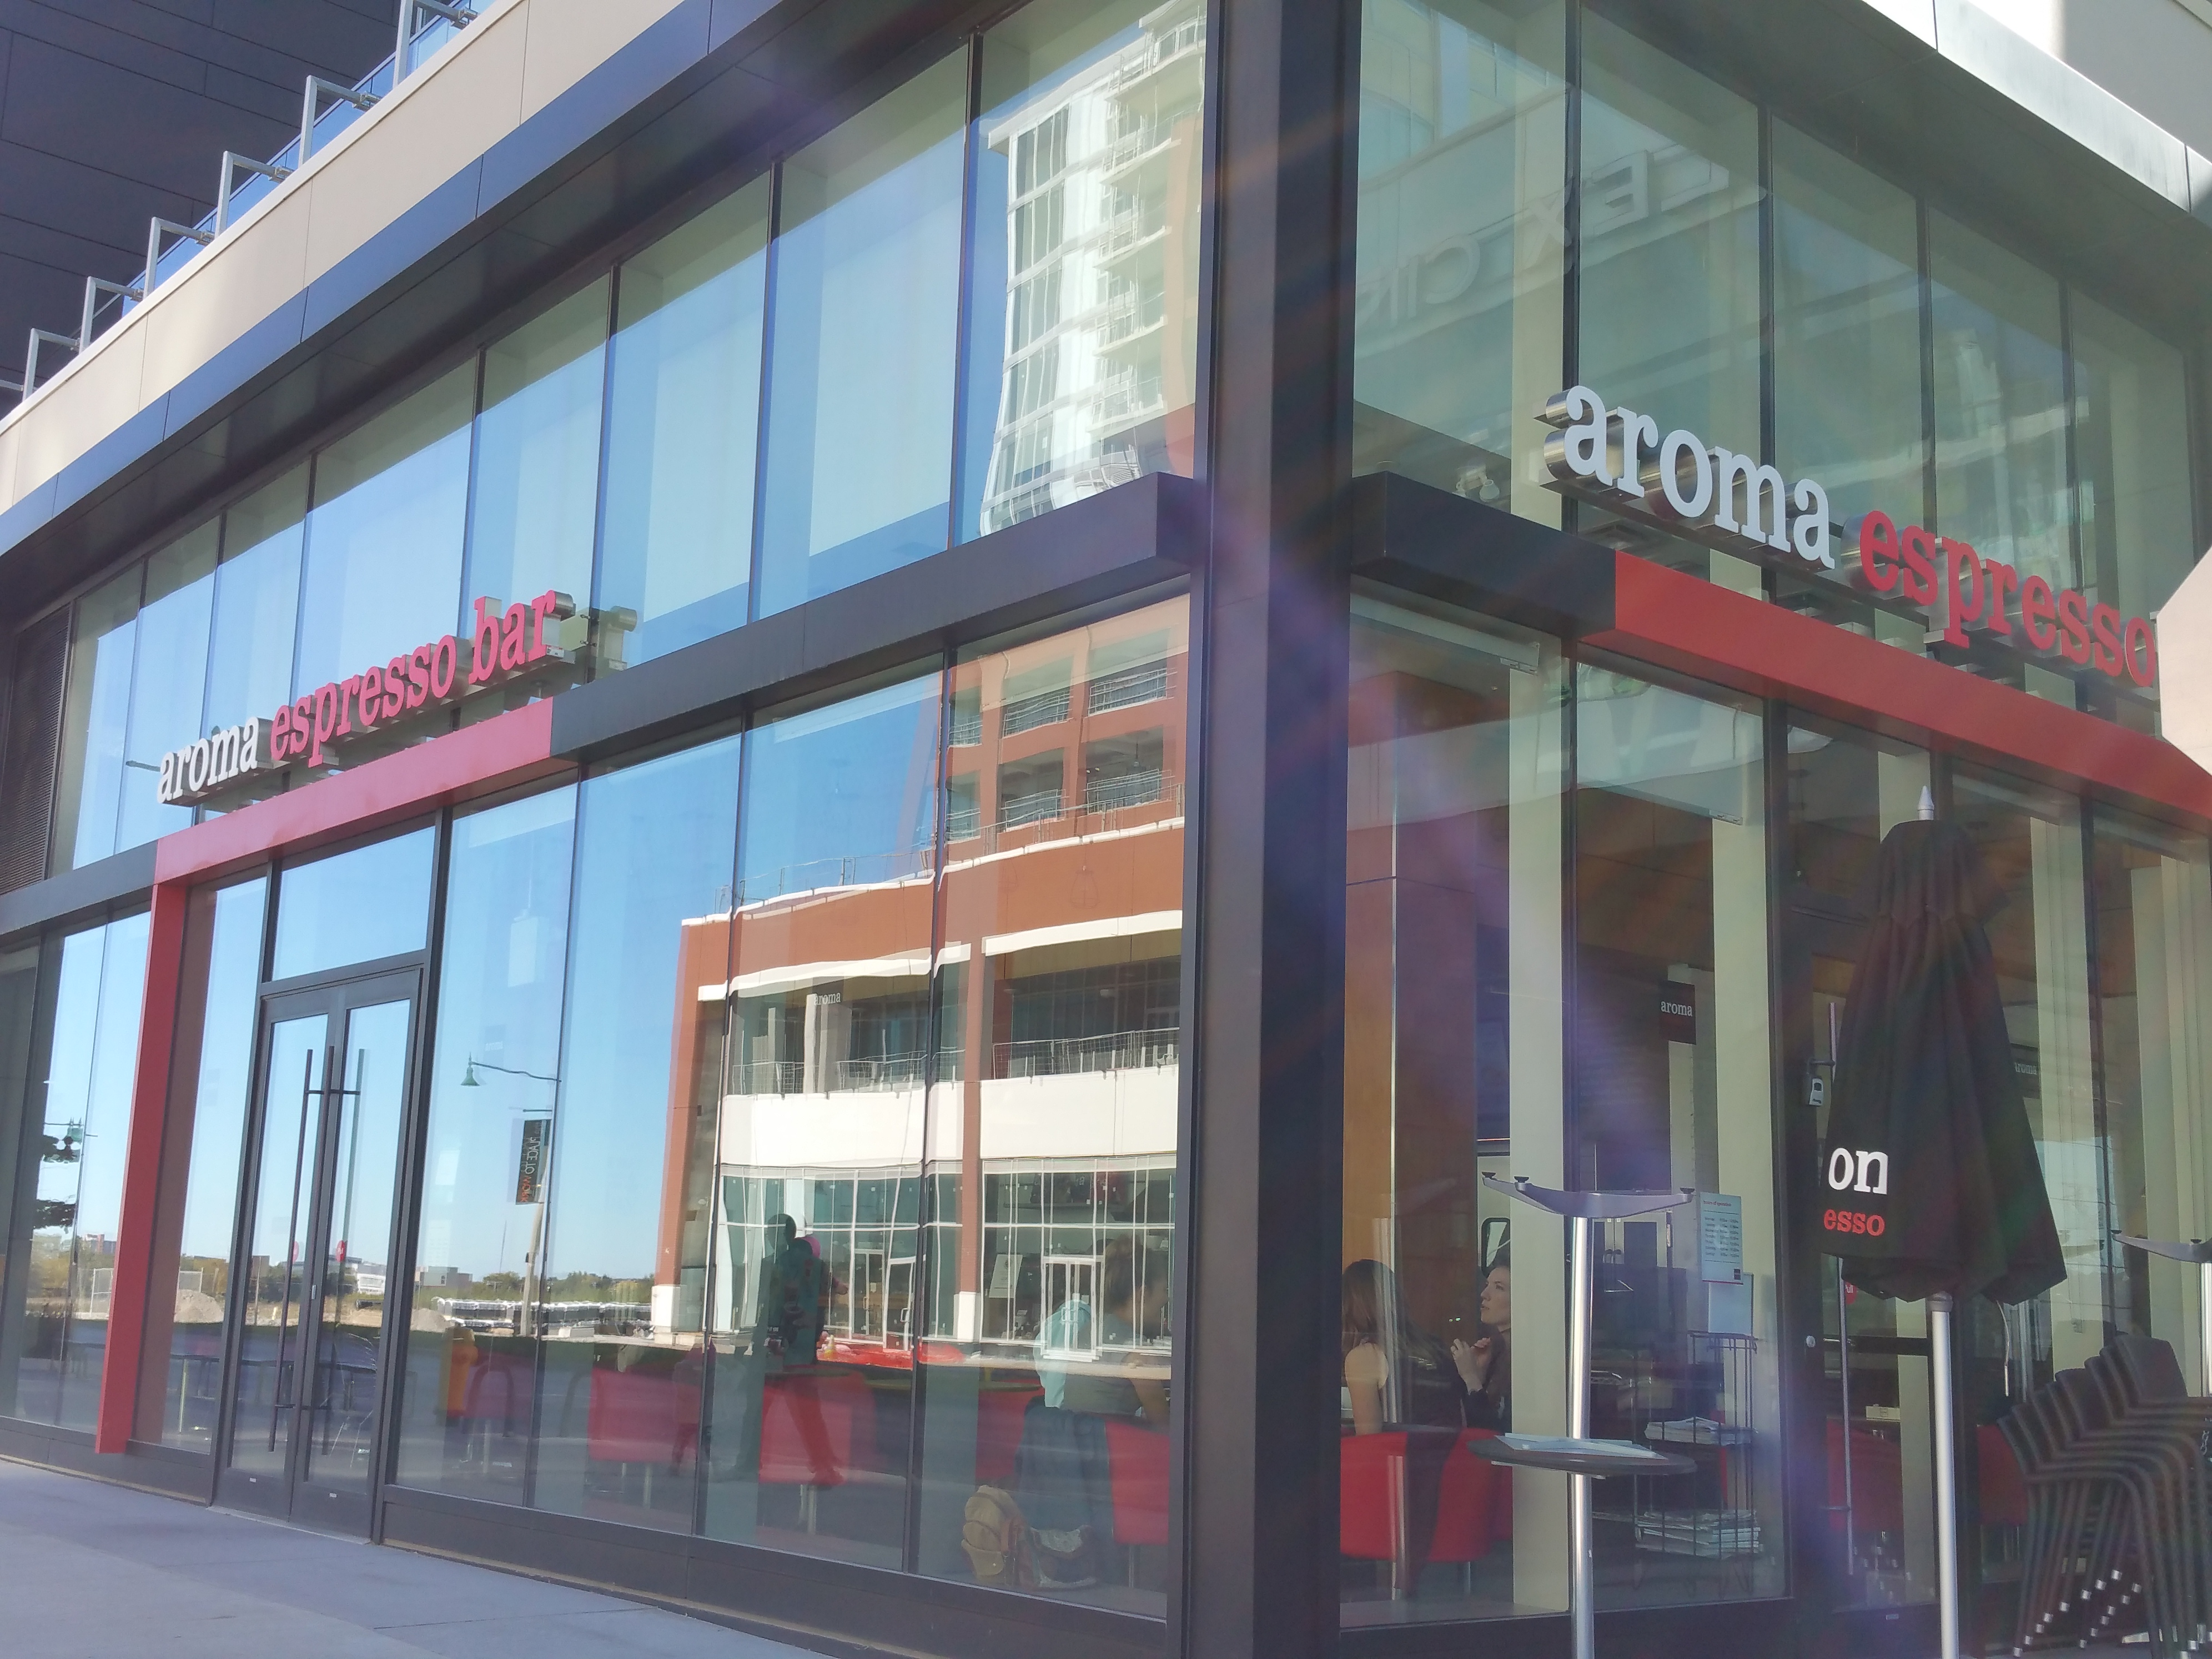 Review aroma espresso bar downtown markham a family